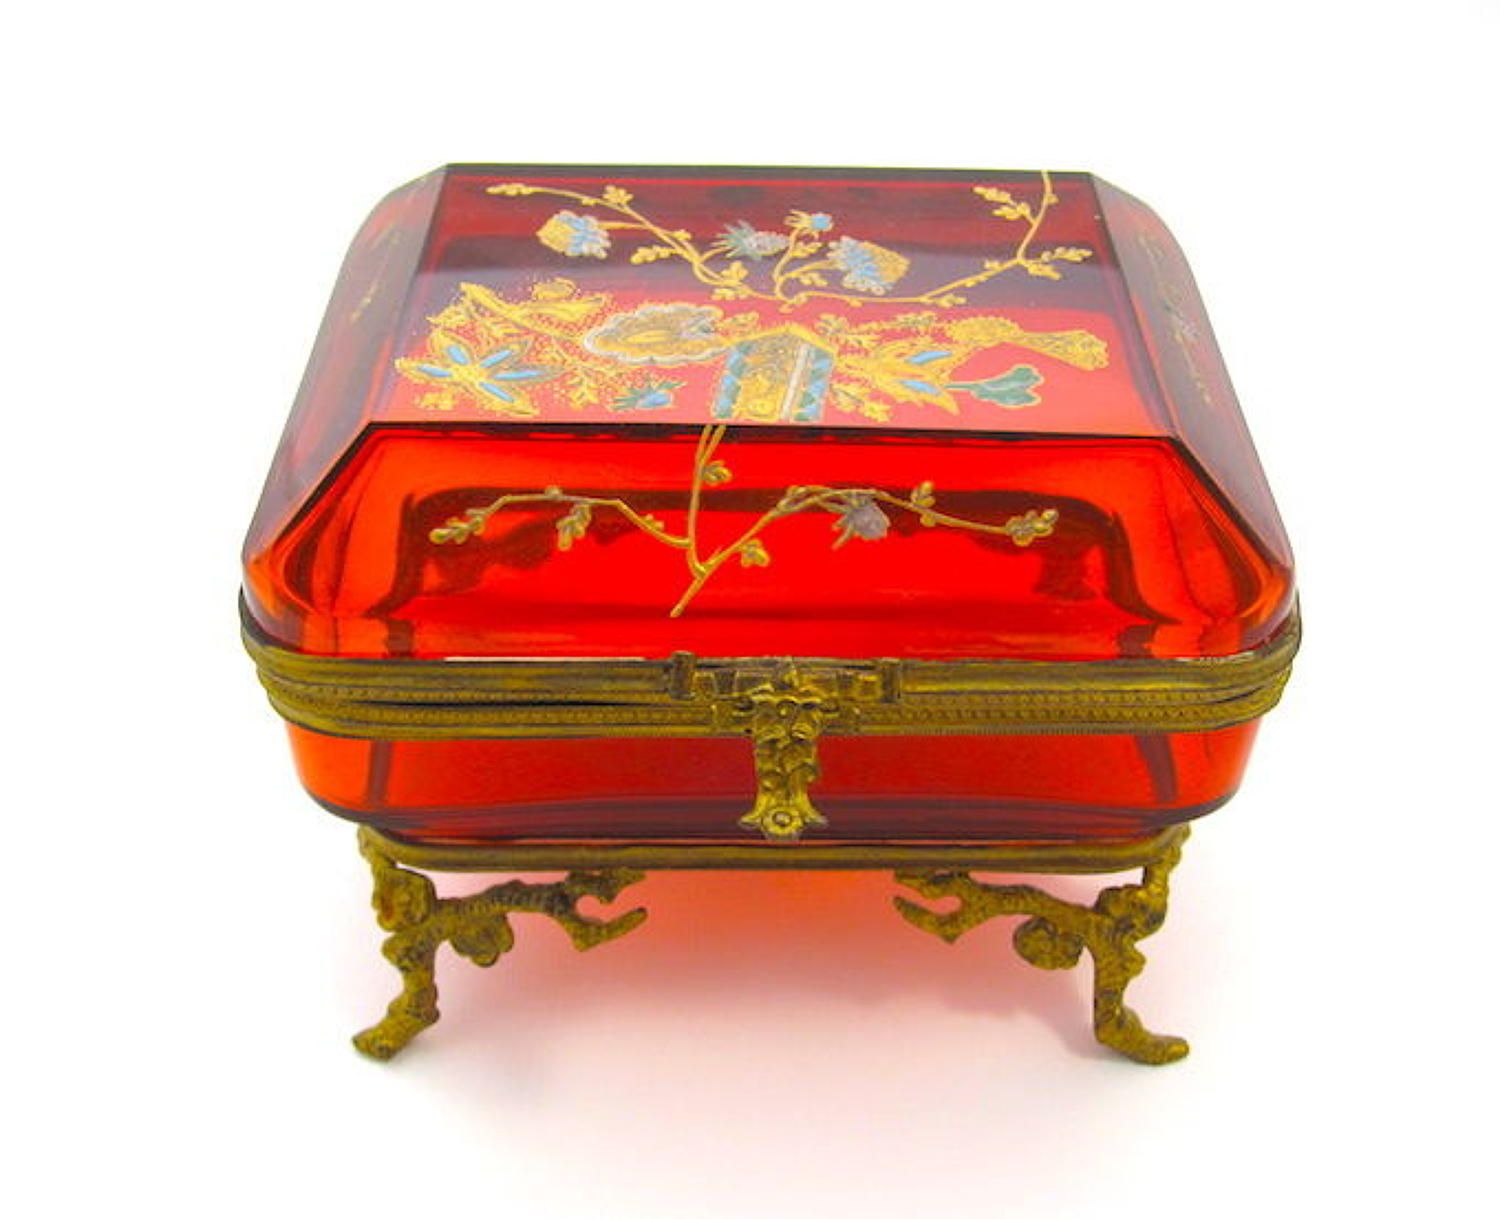 Unusual Antique BACCARAT Ruby Red Glass Casket